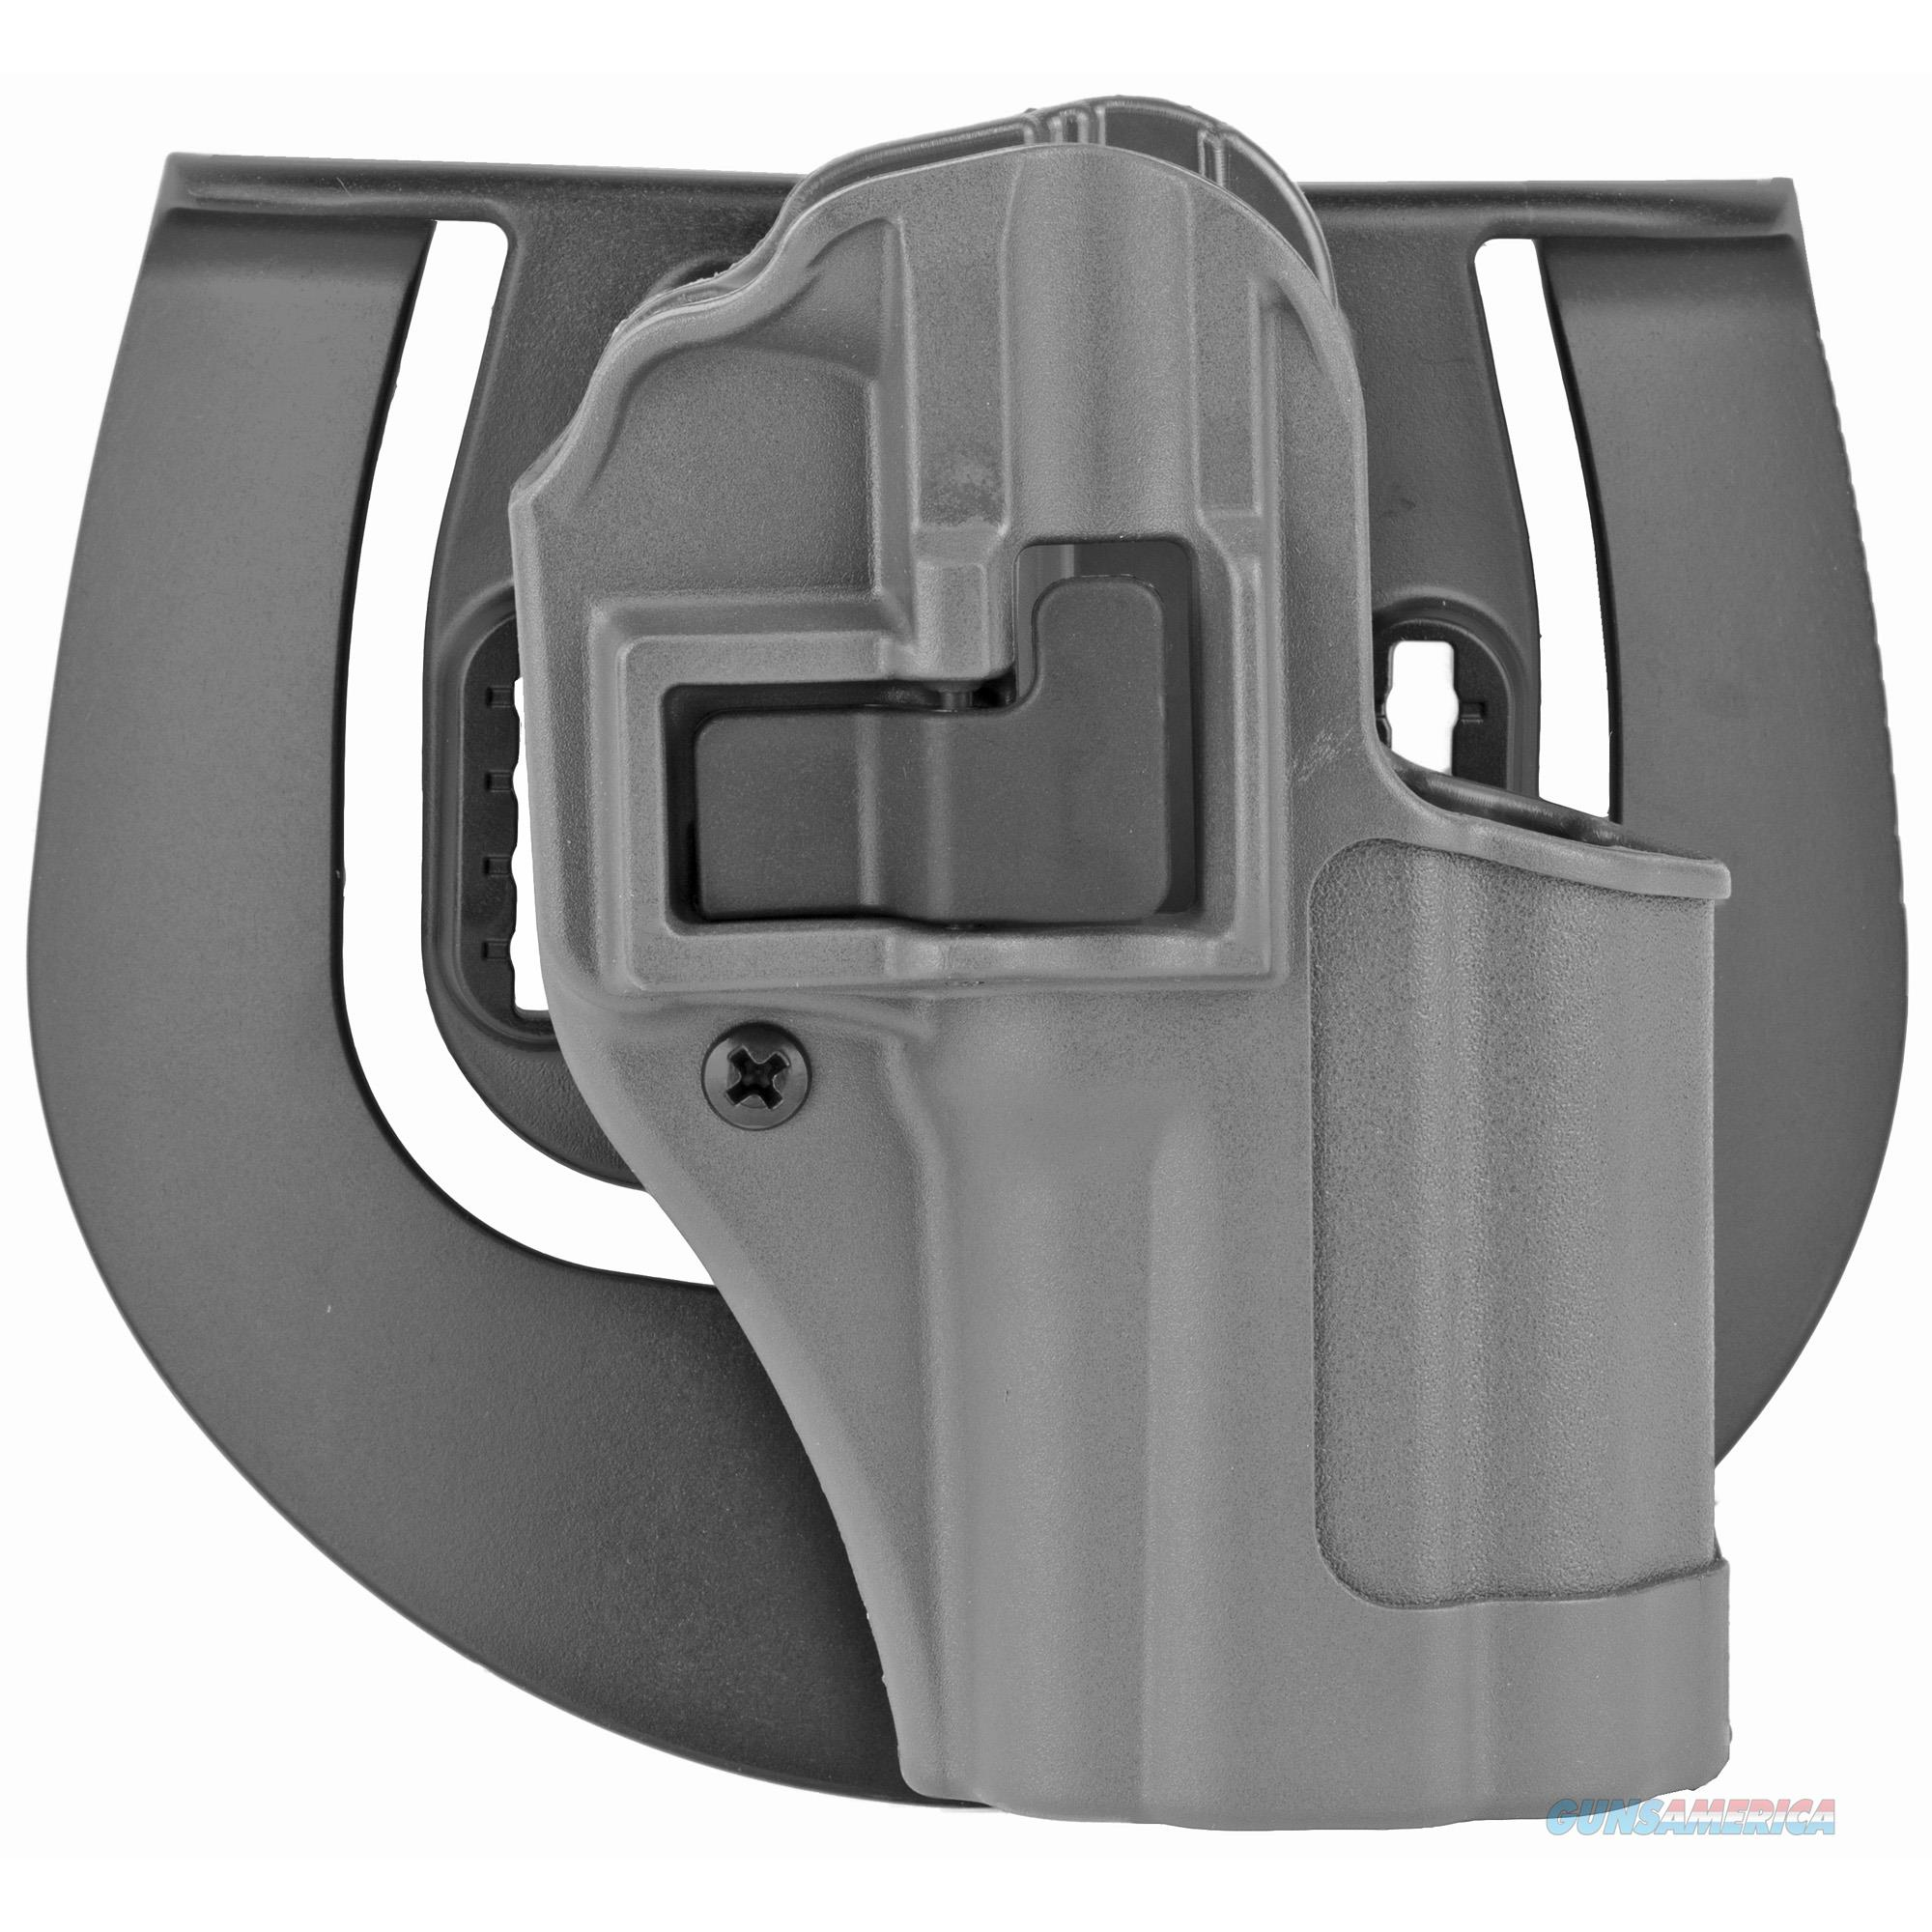 BlackHawk 413507BK-R SERA CQC Sportster Paddle Holster – Gun Metal Gray, Right Draw – Springfield XD Compact  Non-Guns > Holsters and Gunleather > Concealed Carry